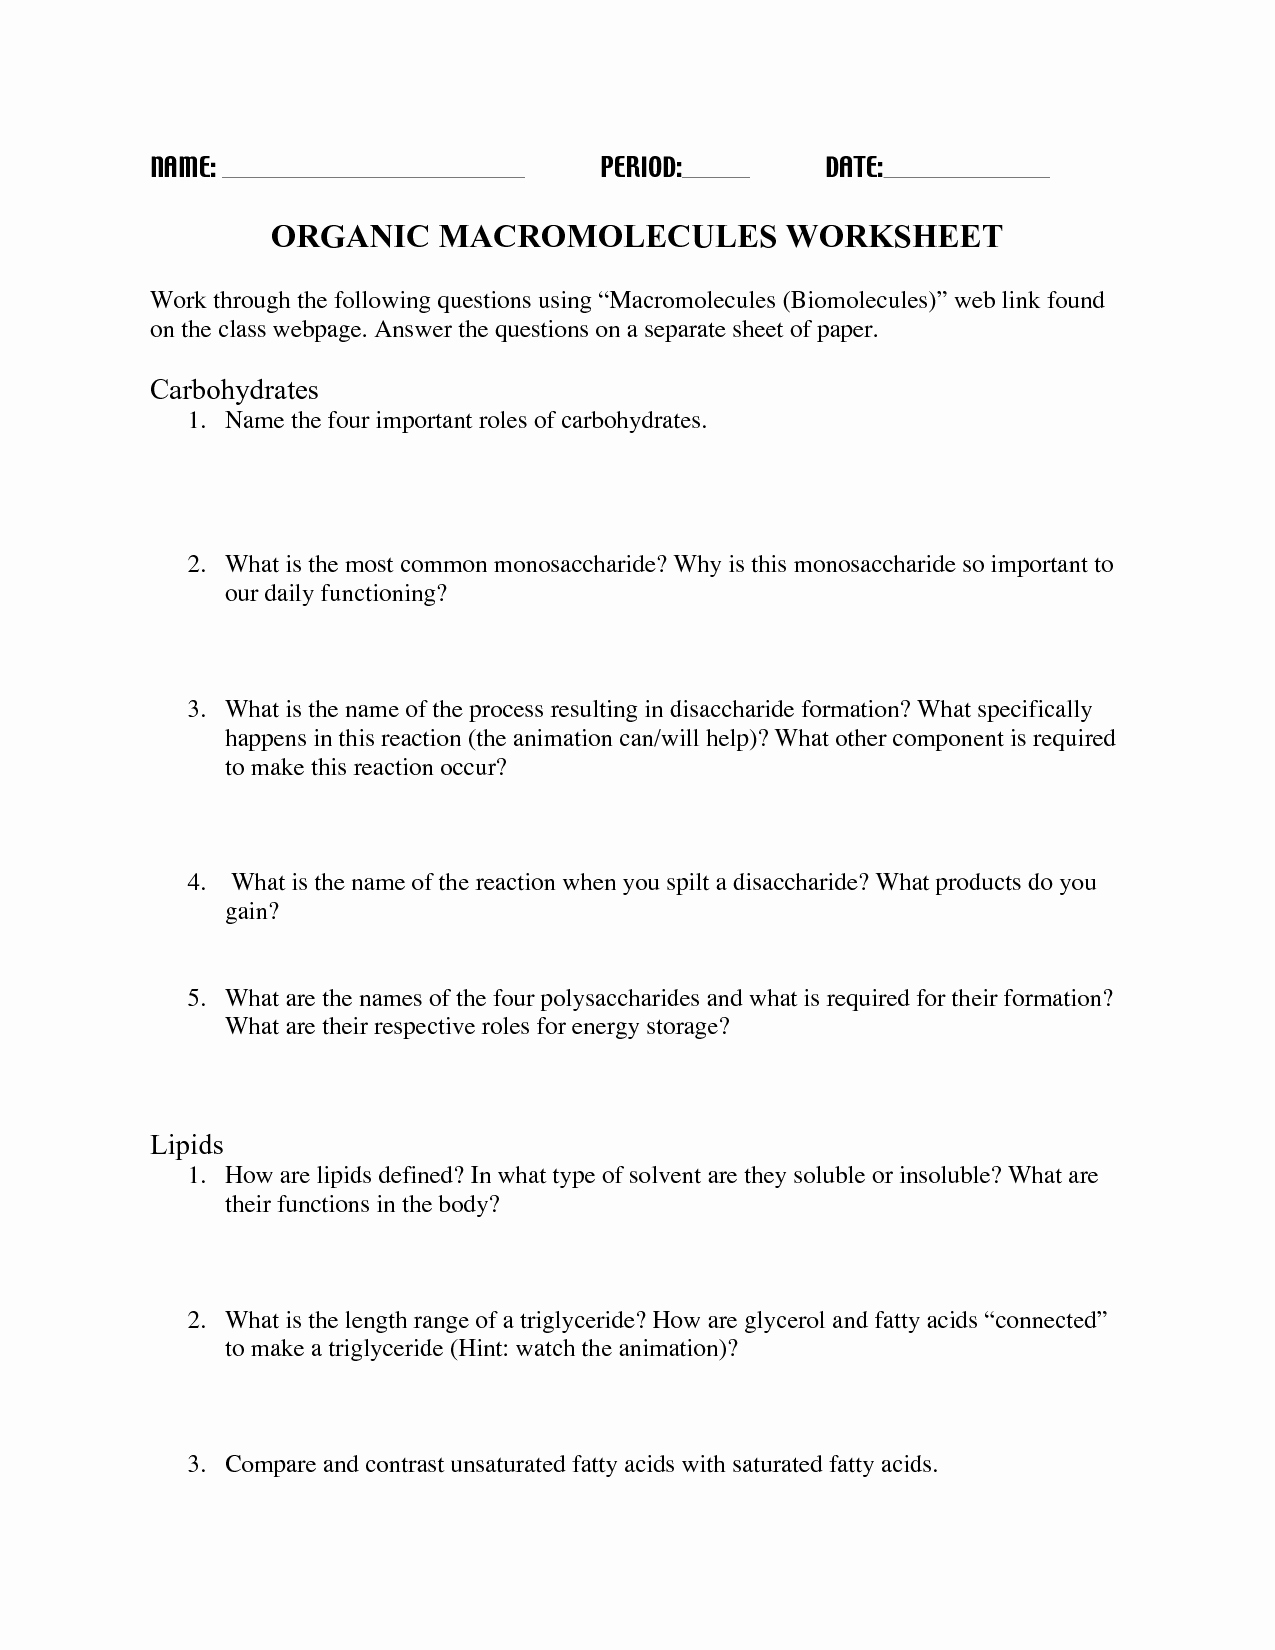 Building Macromolecules Worksheet Answers Best Of 16 Best Of Building Macromolecules Worksheet Answer